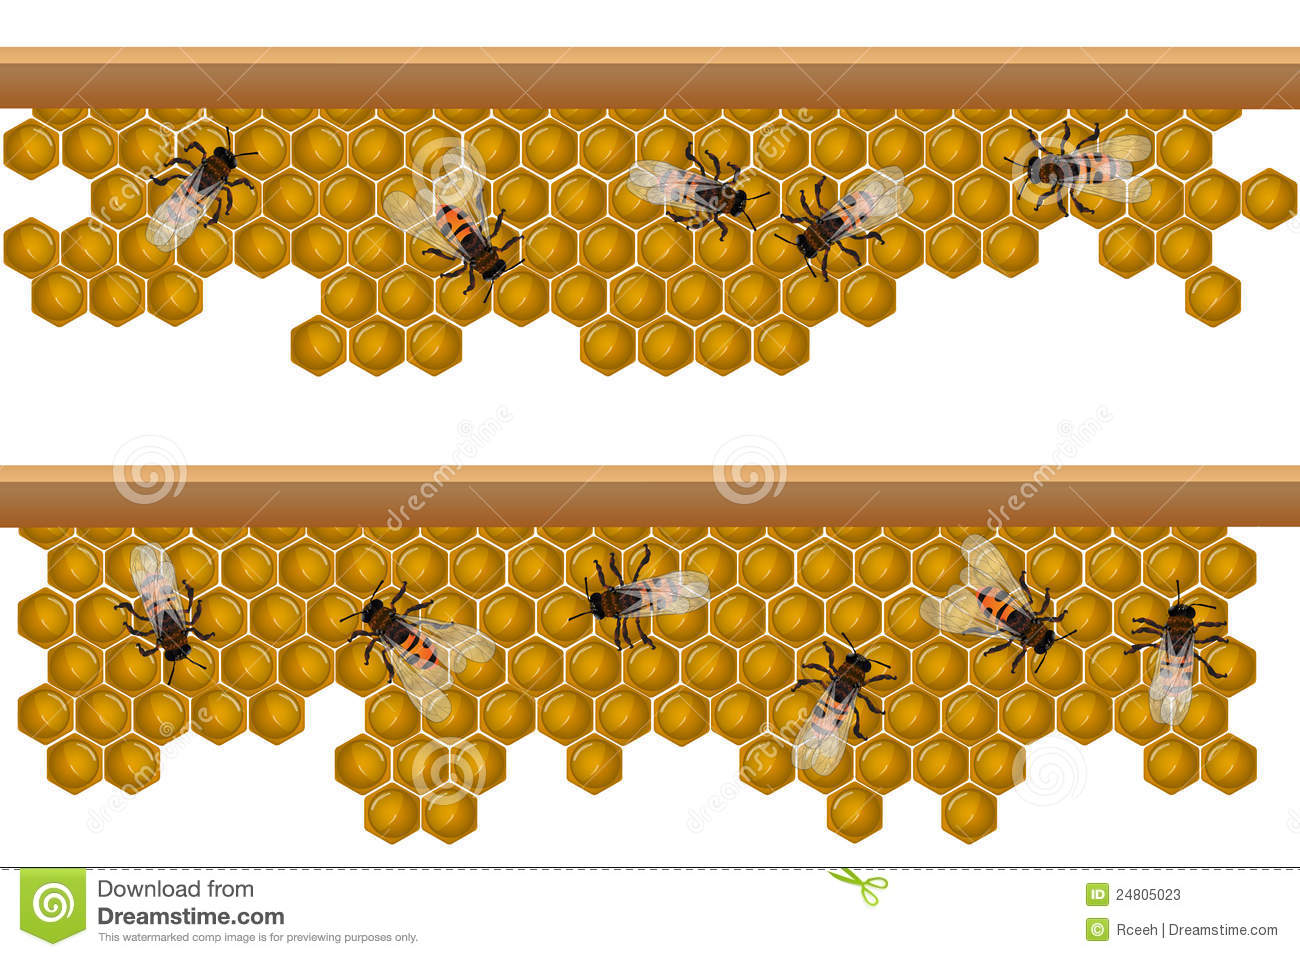 Bee hive pattern stock vector. Illustration of working